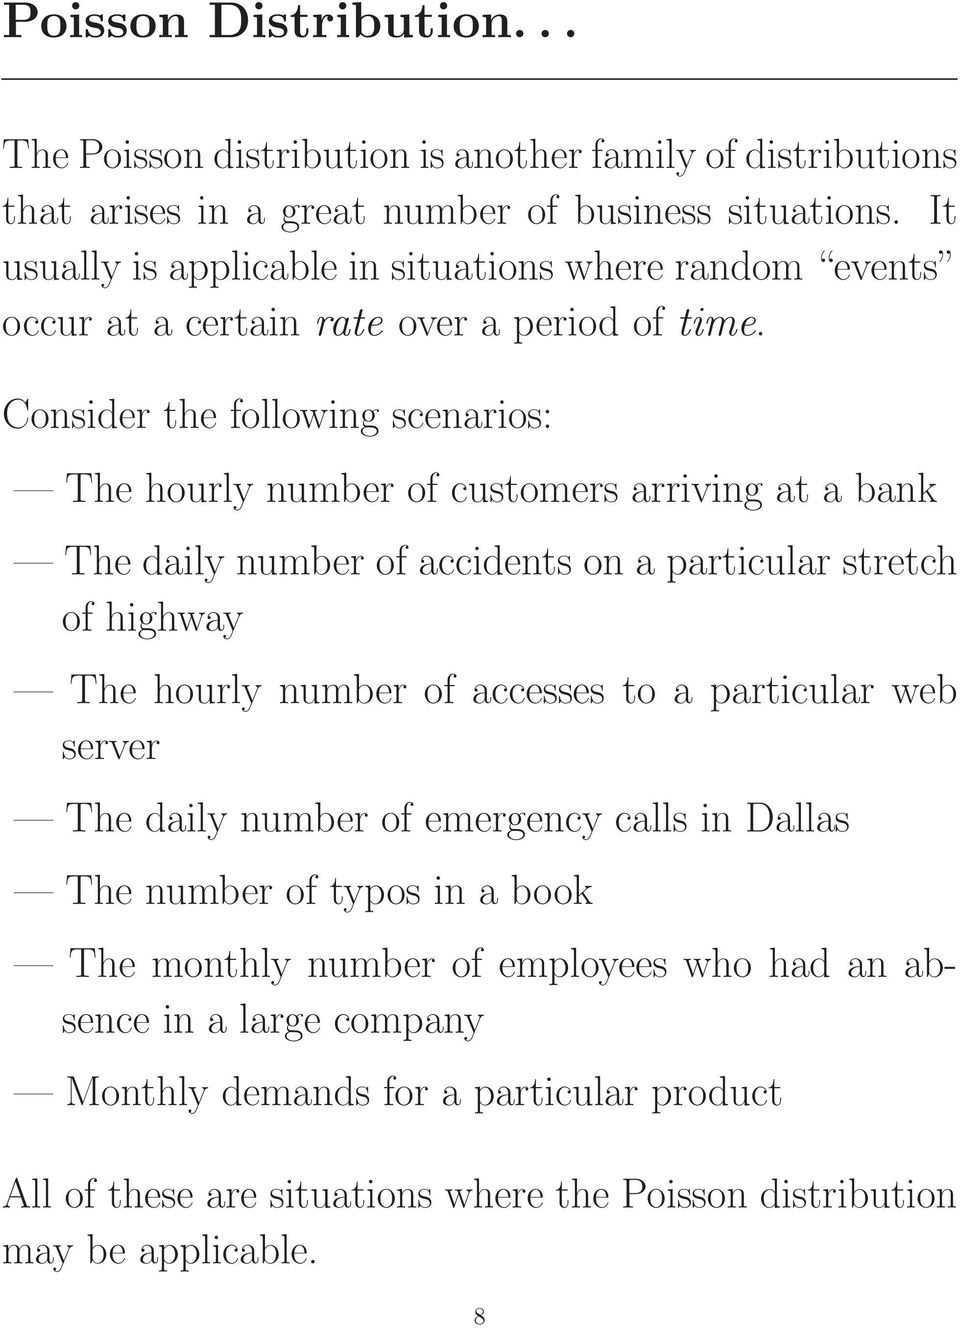 Consider the following scenarios: The hourly number of customers arriving at a bank The daily number of accidents on a particular stretch of highway The hourly number of accesses